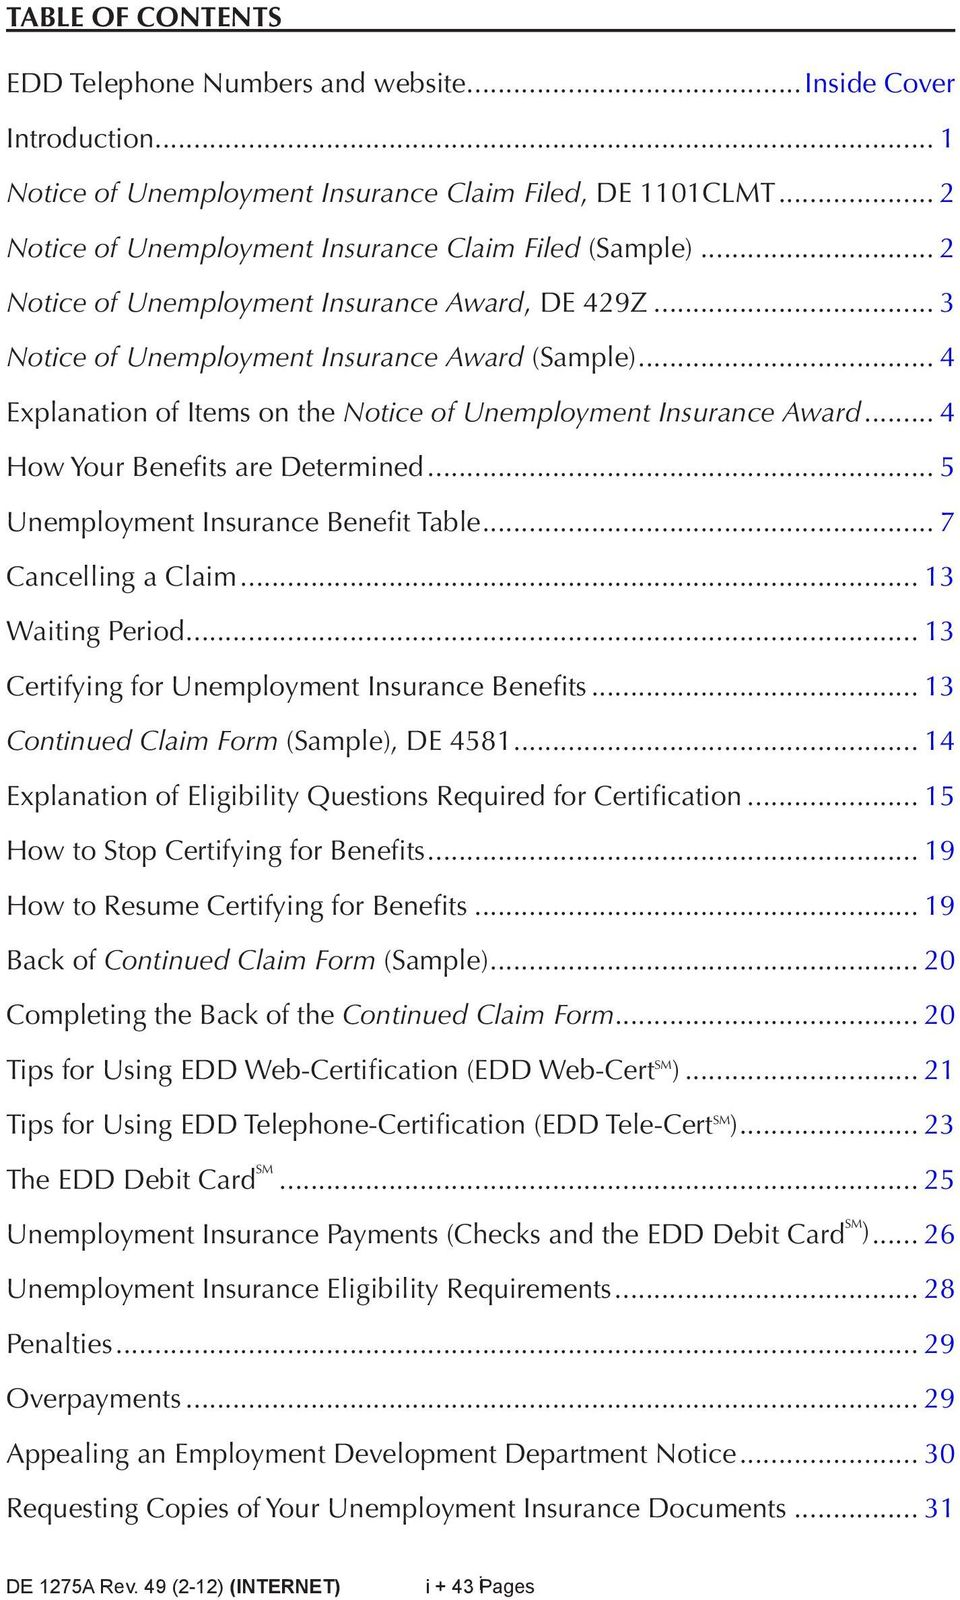 a guide to benefits and employment services